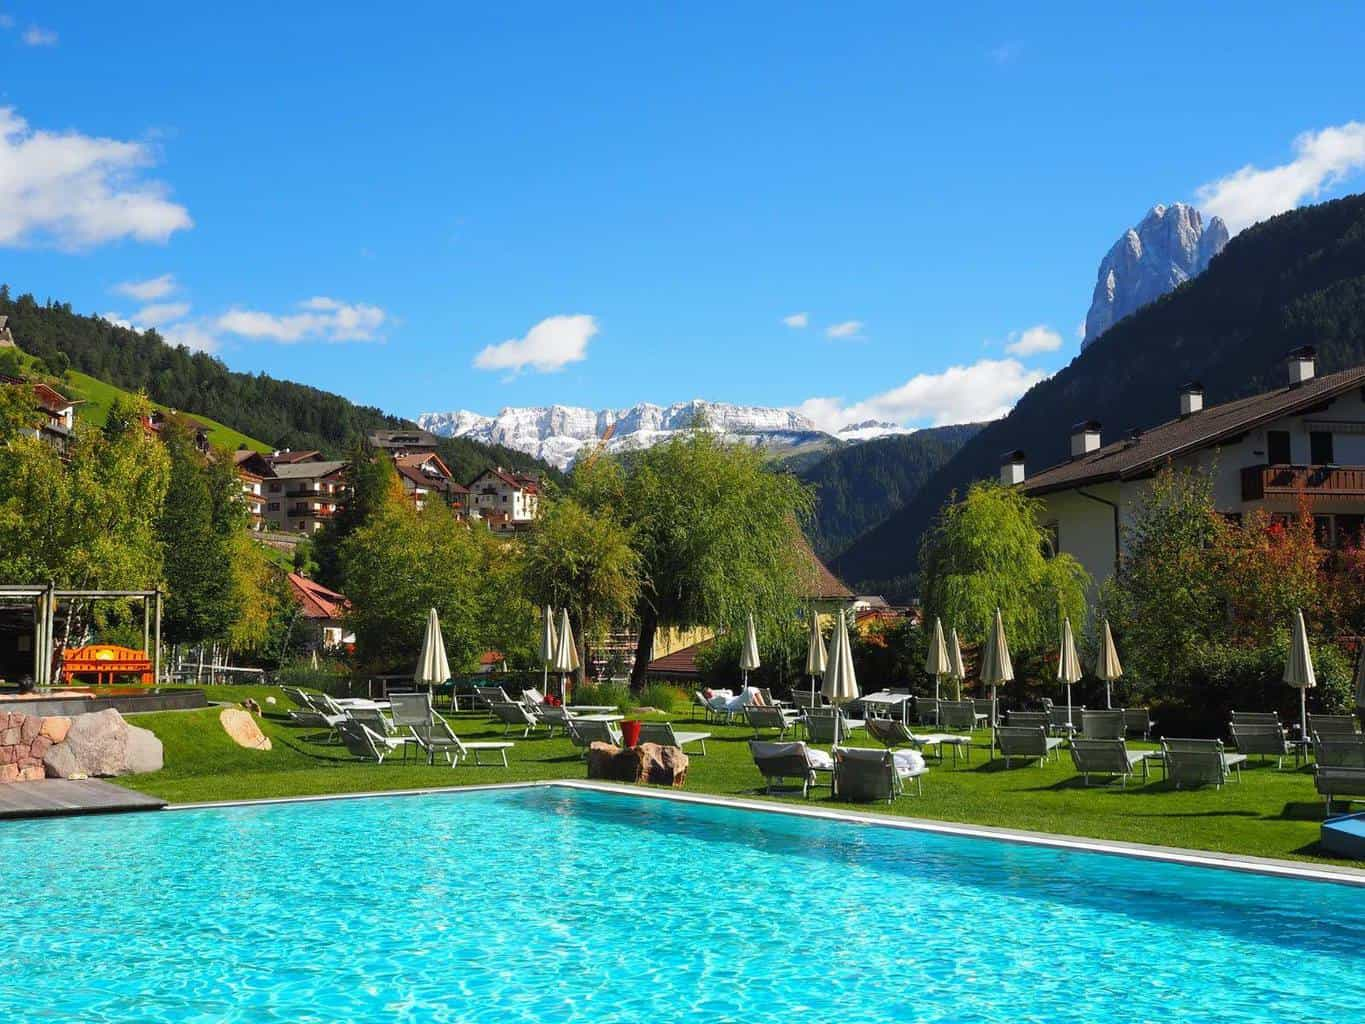 Gardena Berlin Walking Wellness In Val Gardena In The Italian Dolomites